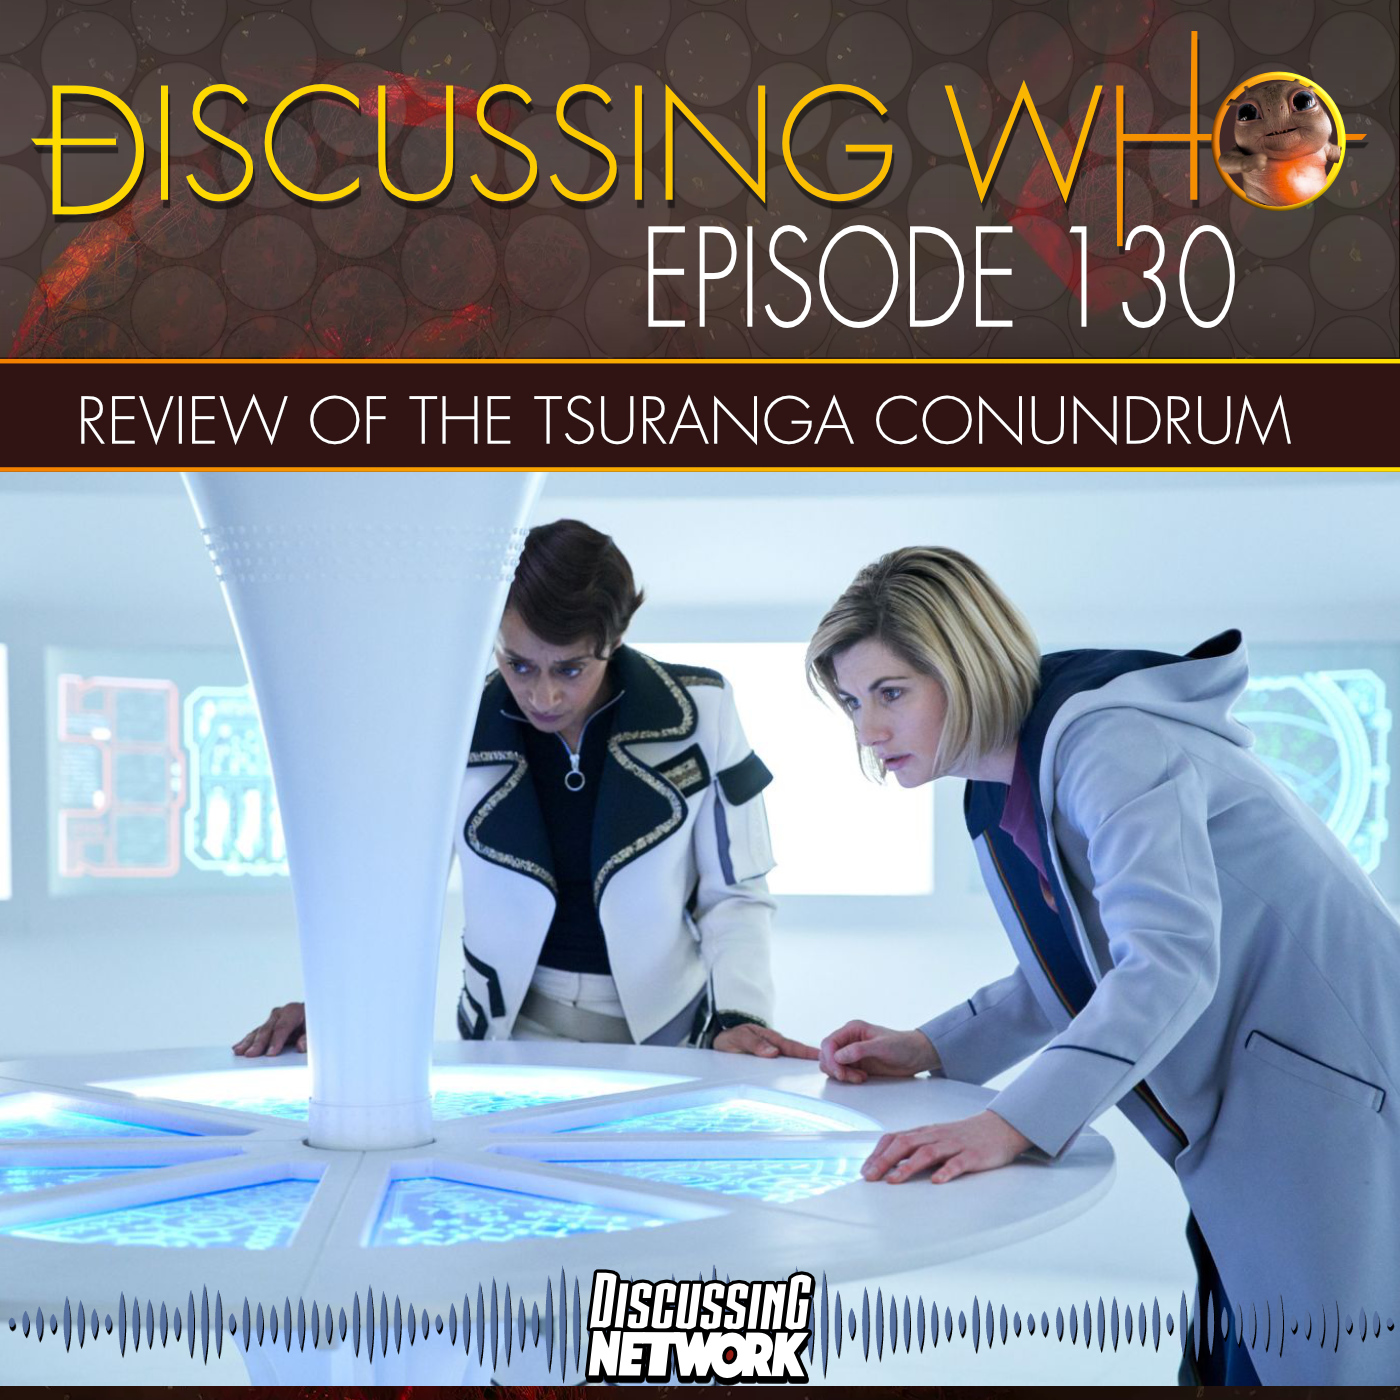 Review of the Tsuranga Conundrum, Doctor Who Series 11 Ep 5